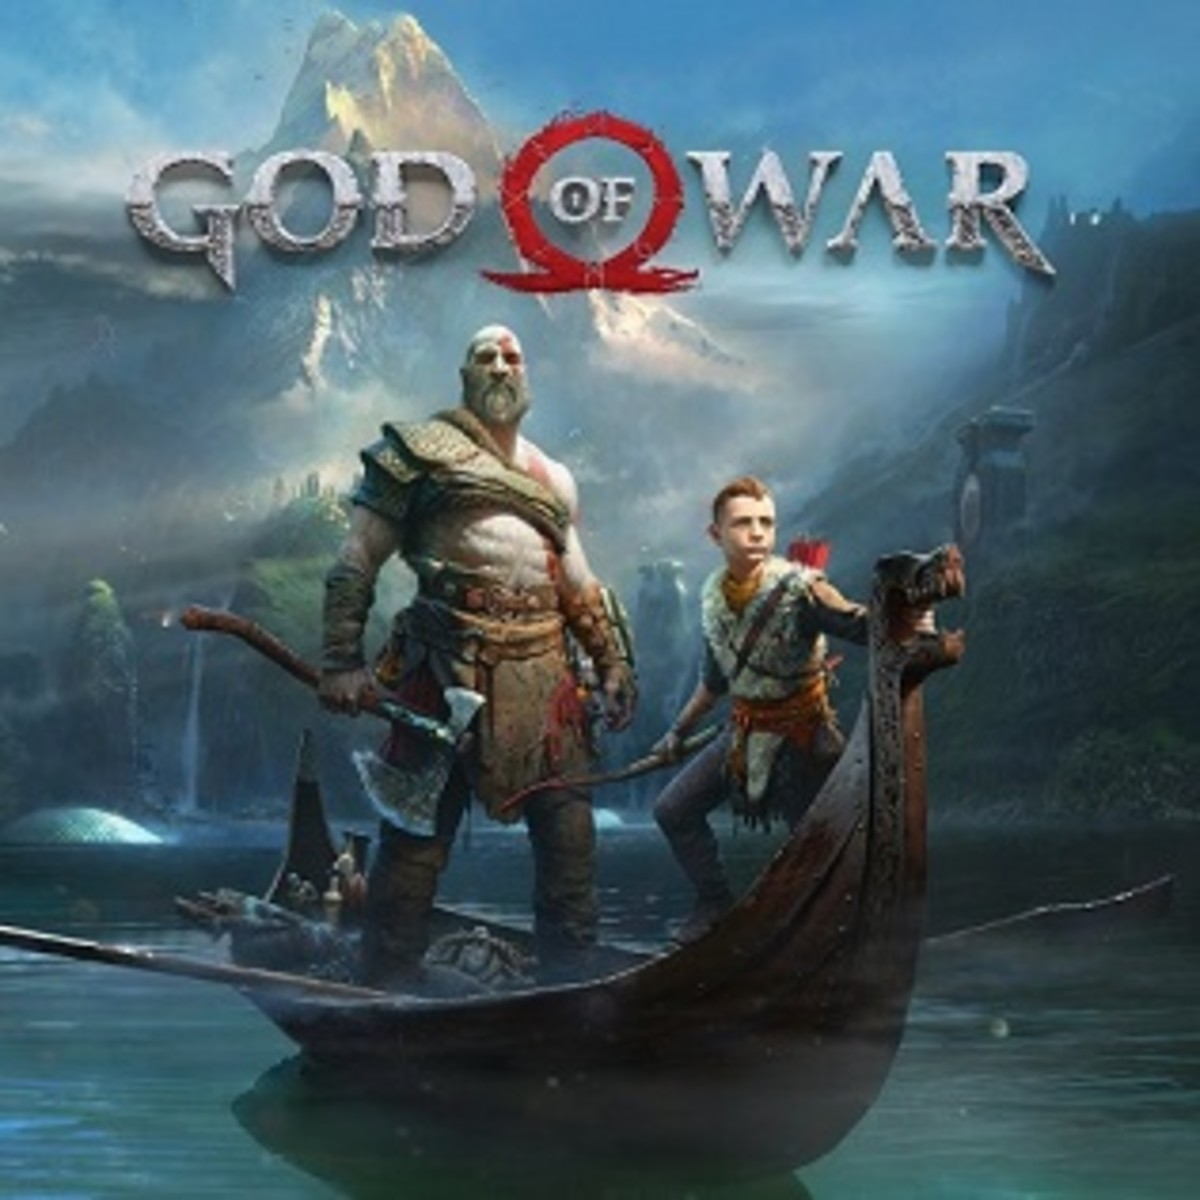 Low resolution image for the cover art for God of War (2018) for PlayStation 4.